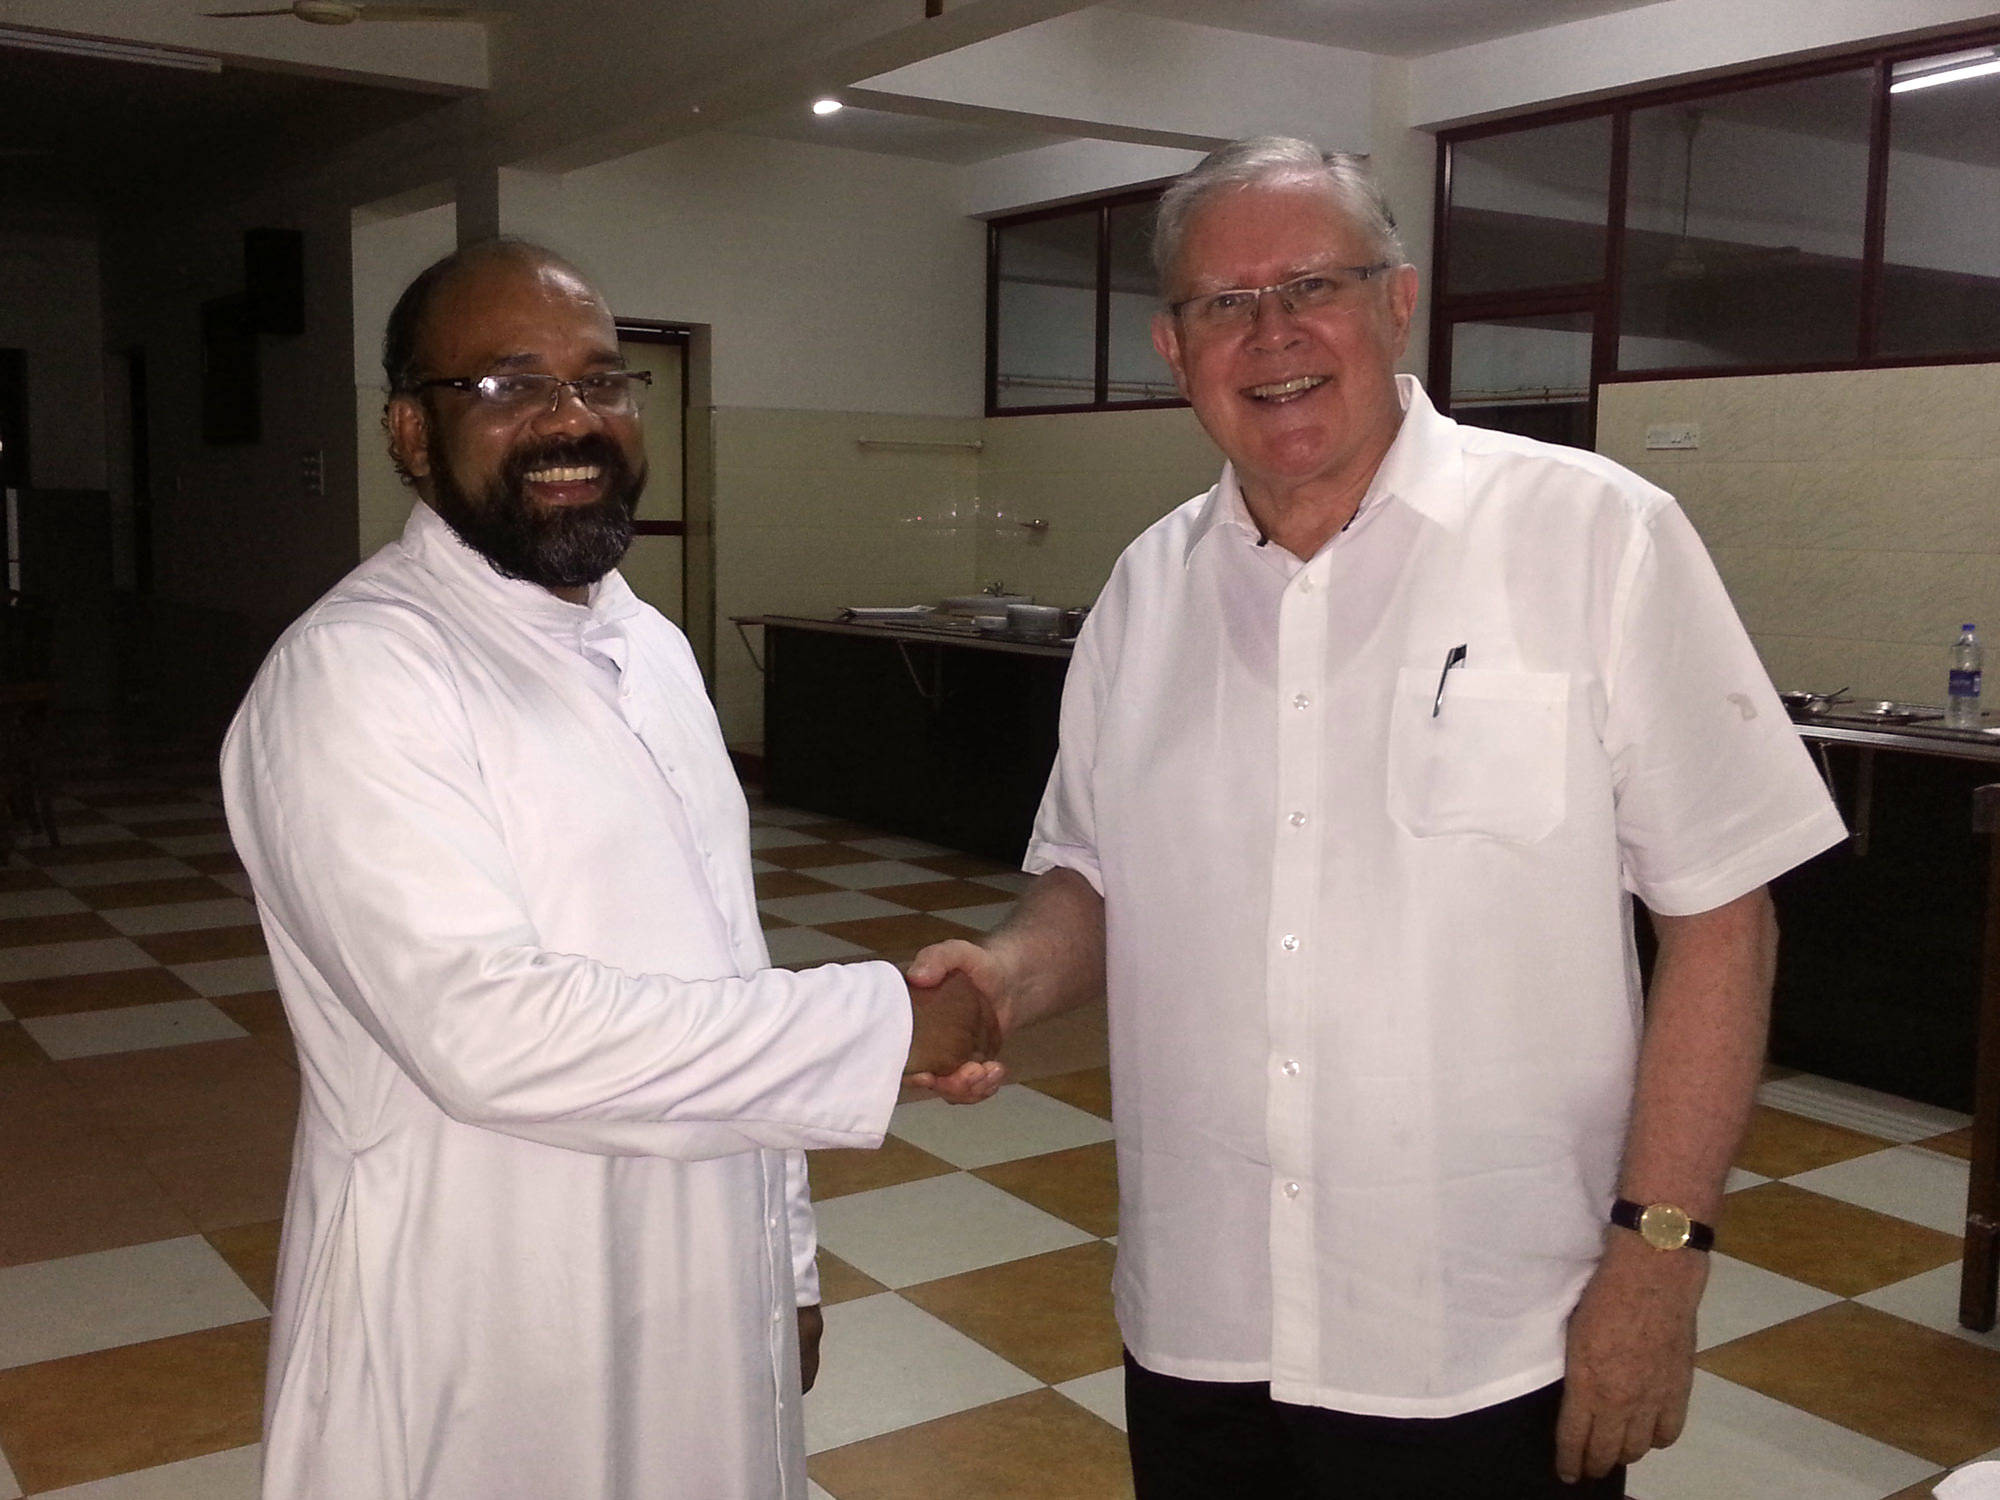 Archbishop Mark Coleridge in Kerala, India. Jan 2015